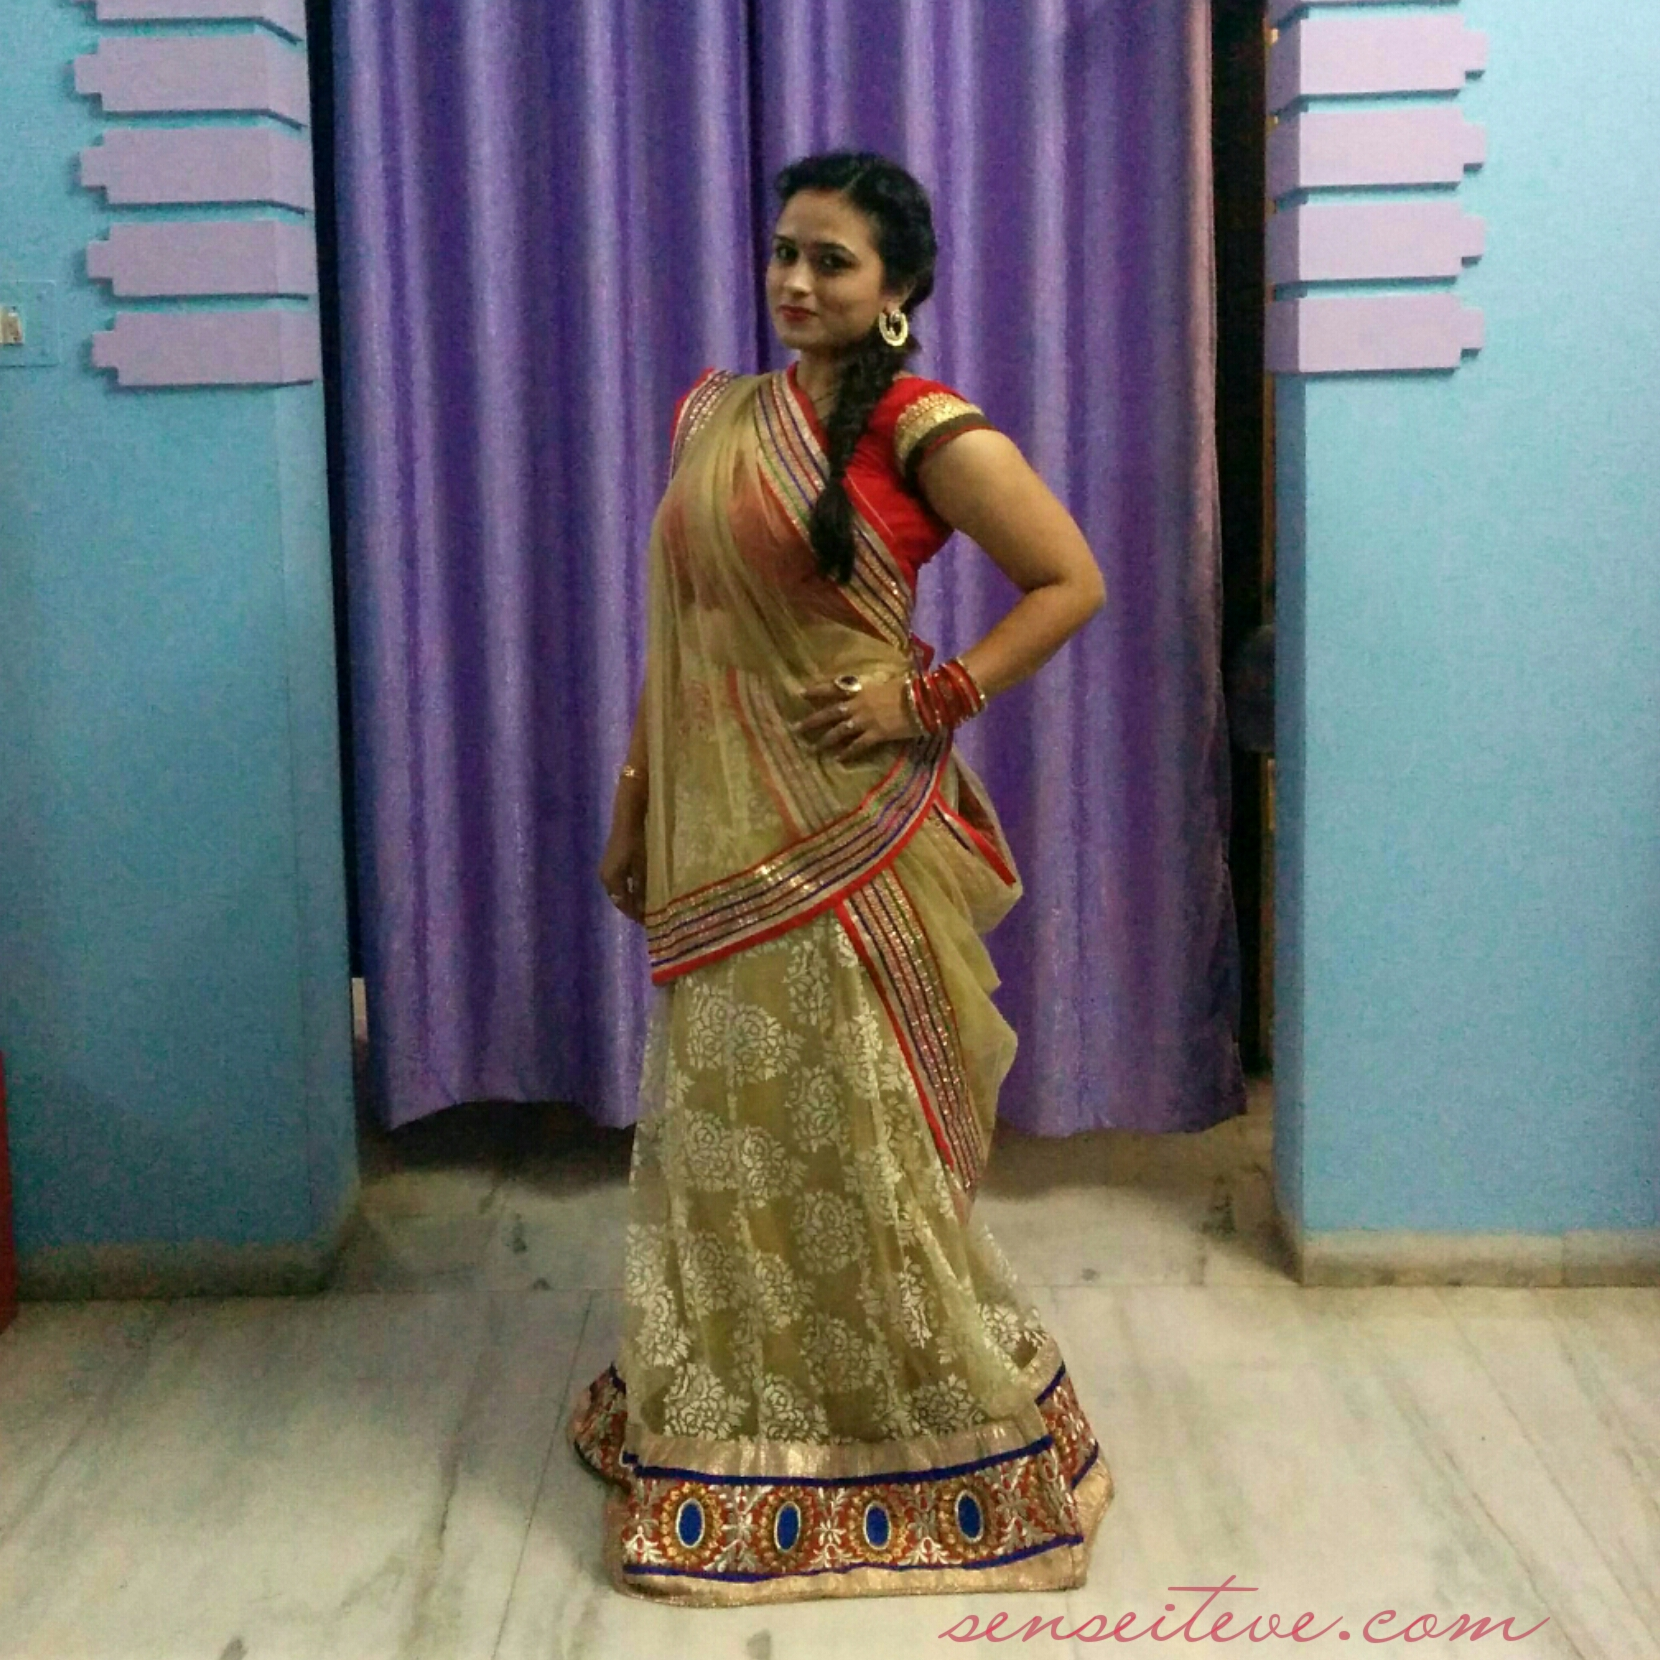 My-Diwali-2015-Celebration-and-OOTD